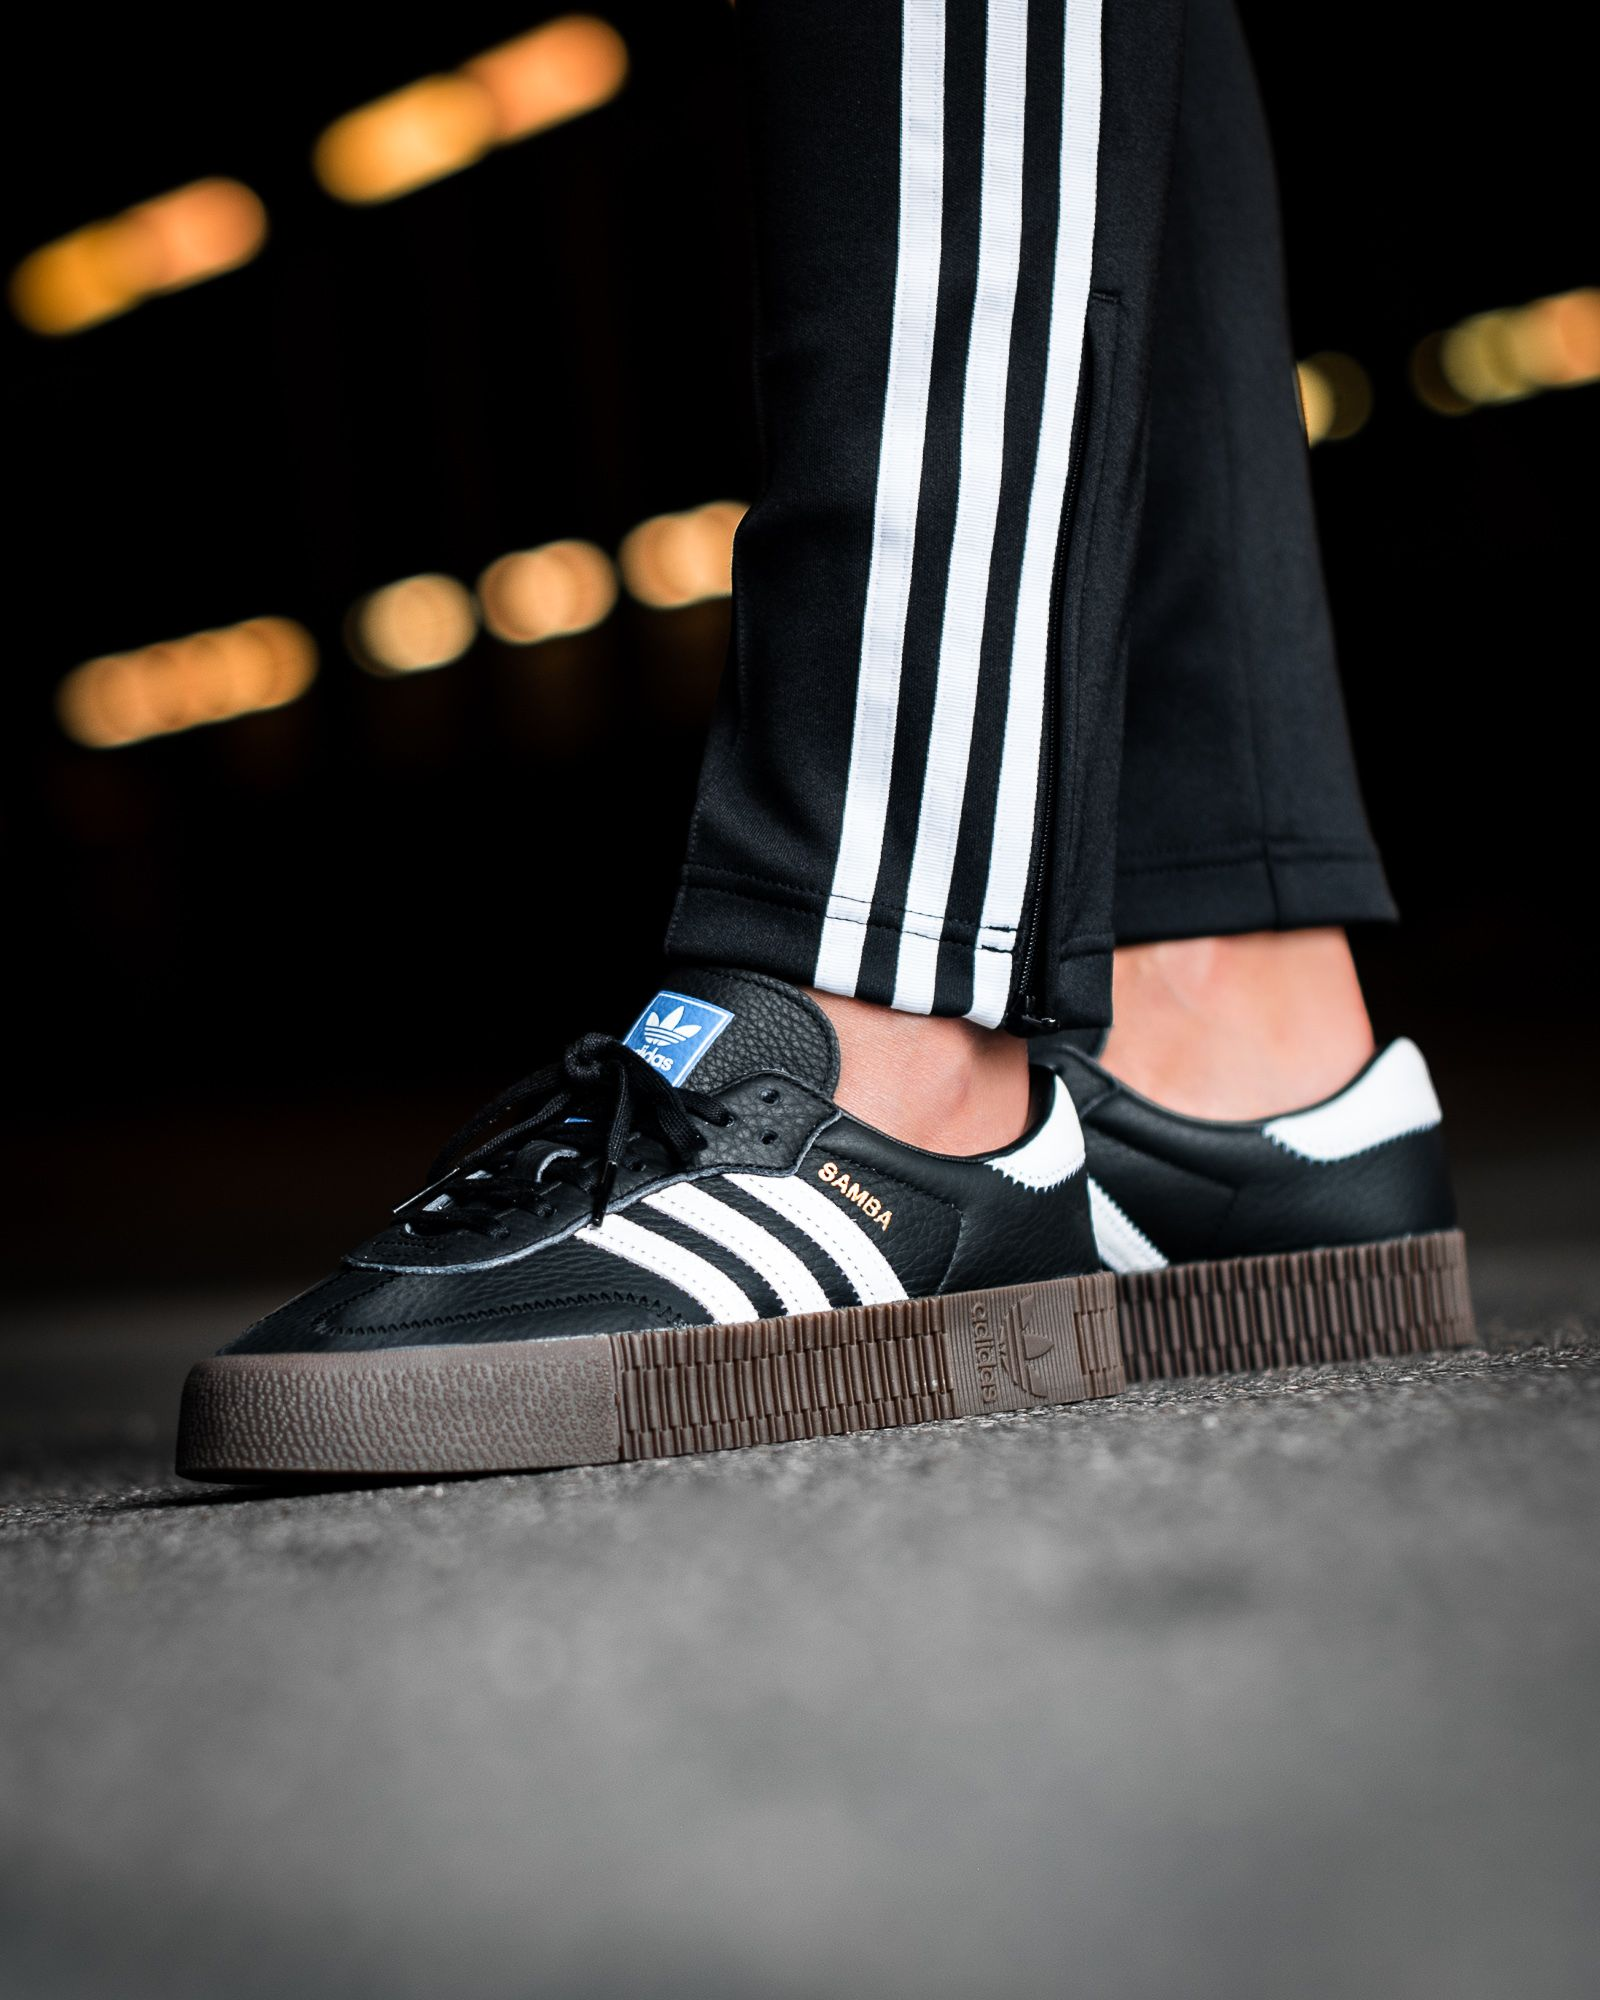 Adidas is reaching new heights with the Adidas